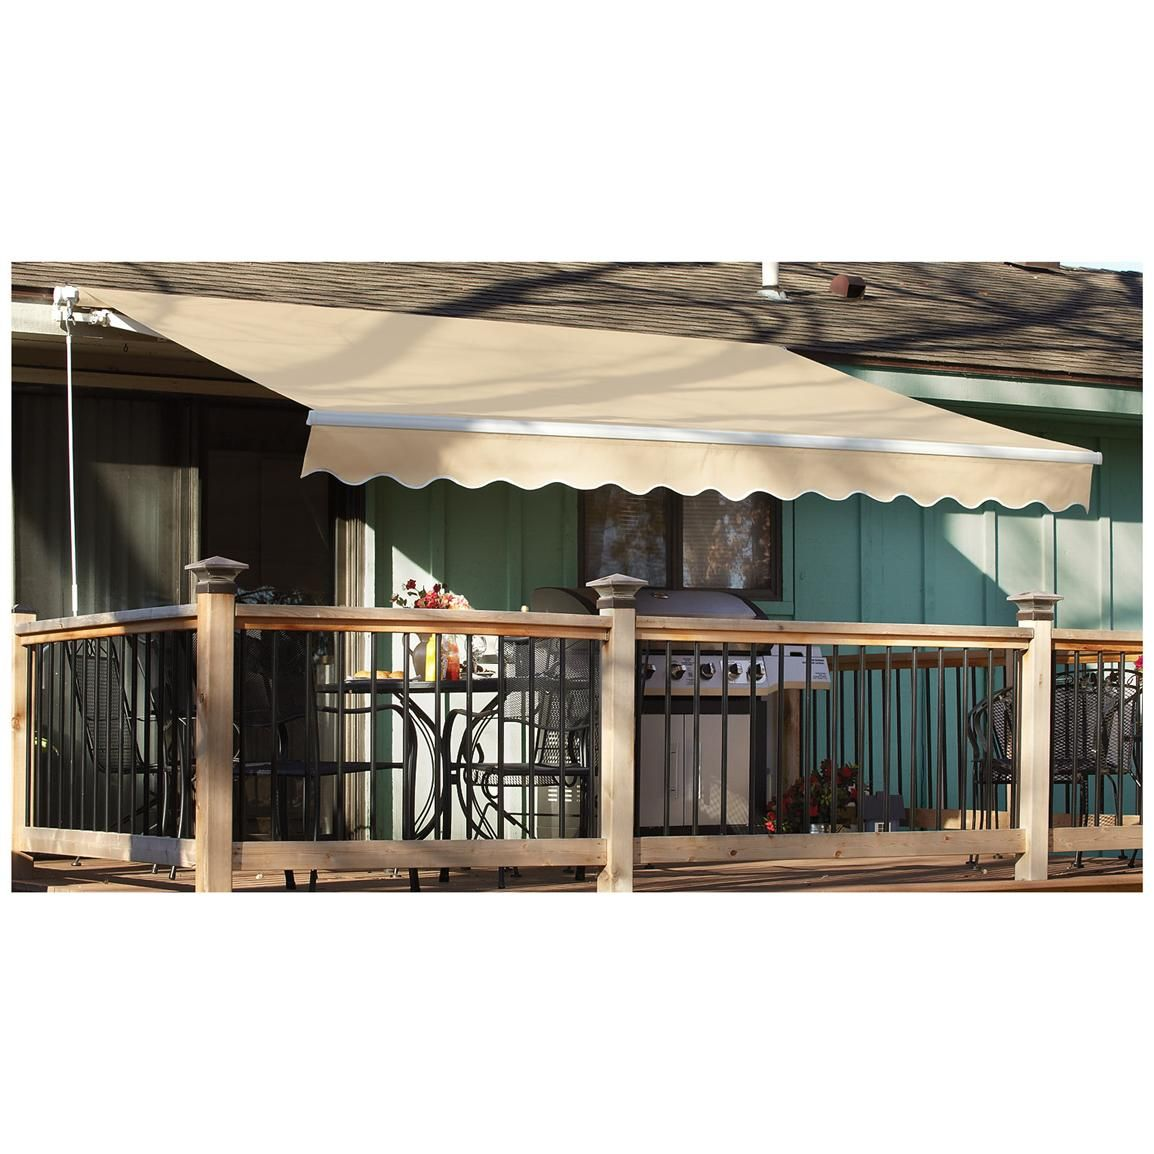 Castlecreek Retractable Awning Pergola Pergola Shade Diy Sun Shade Canopy